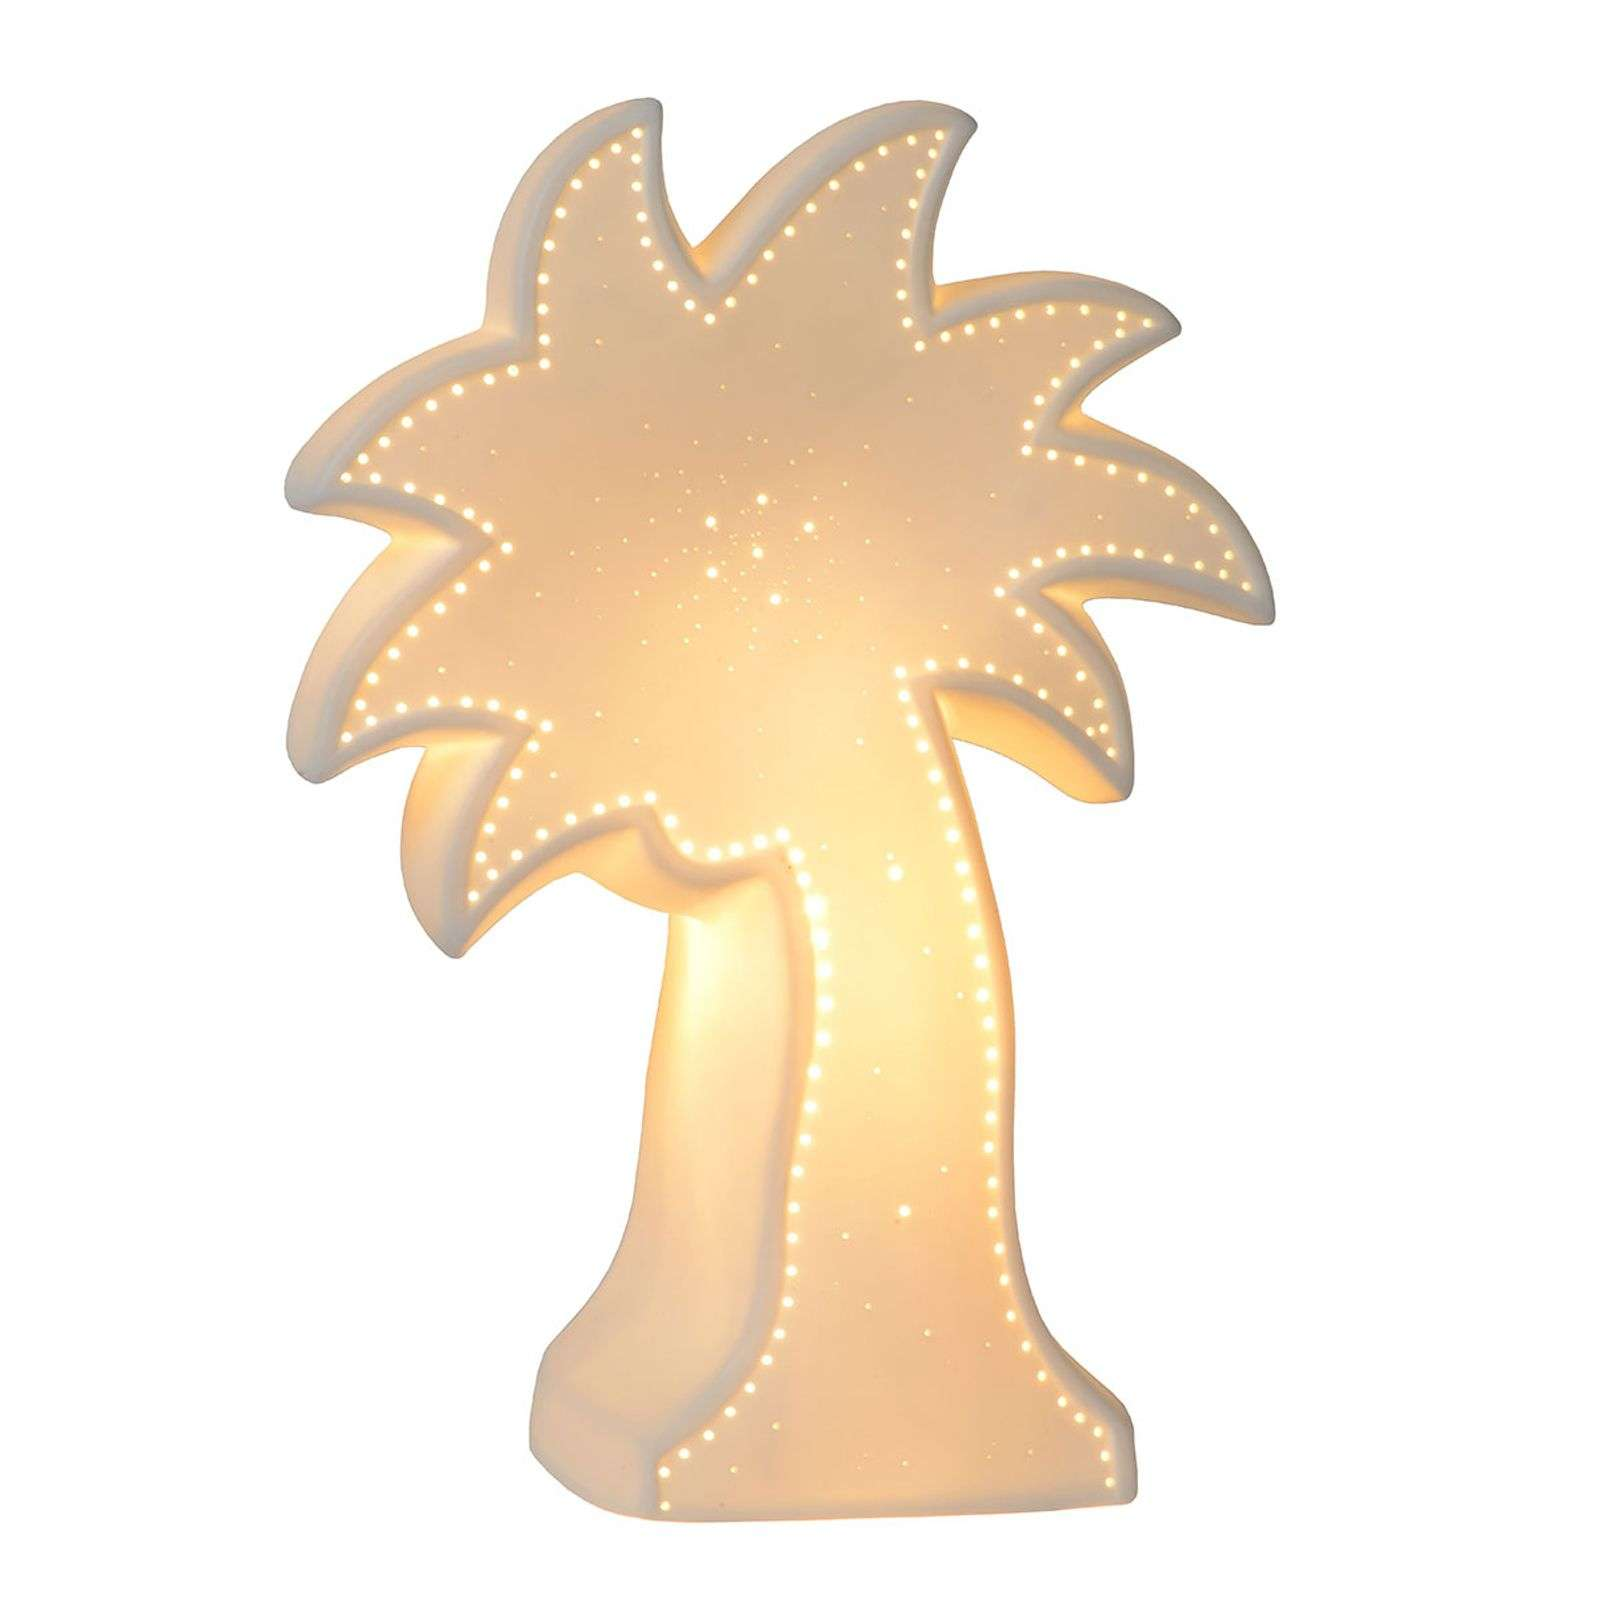 Belle lampe à poser décorative Palm en blanc